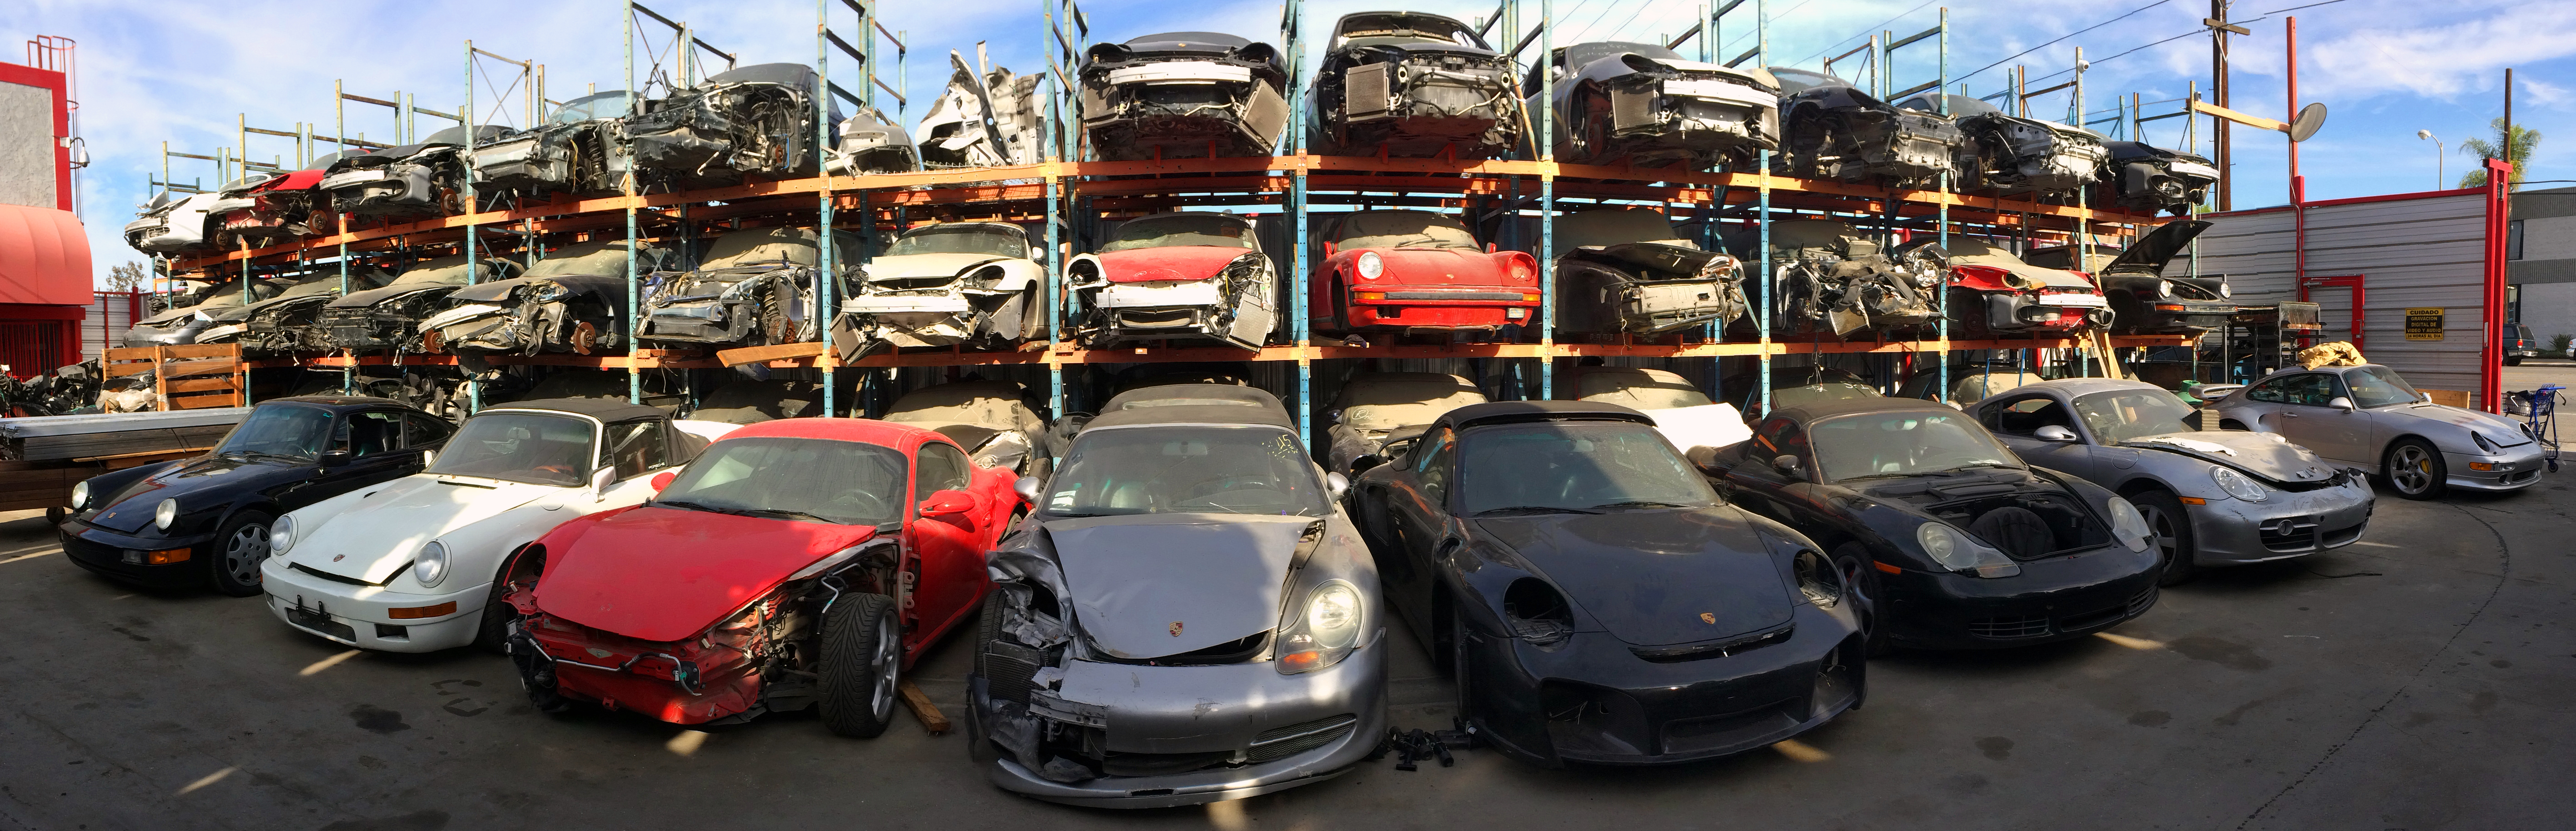 Los Angeles Dismantler Used Porsche Parts For 911